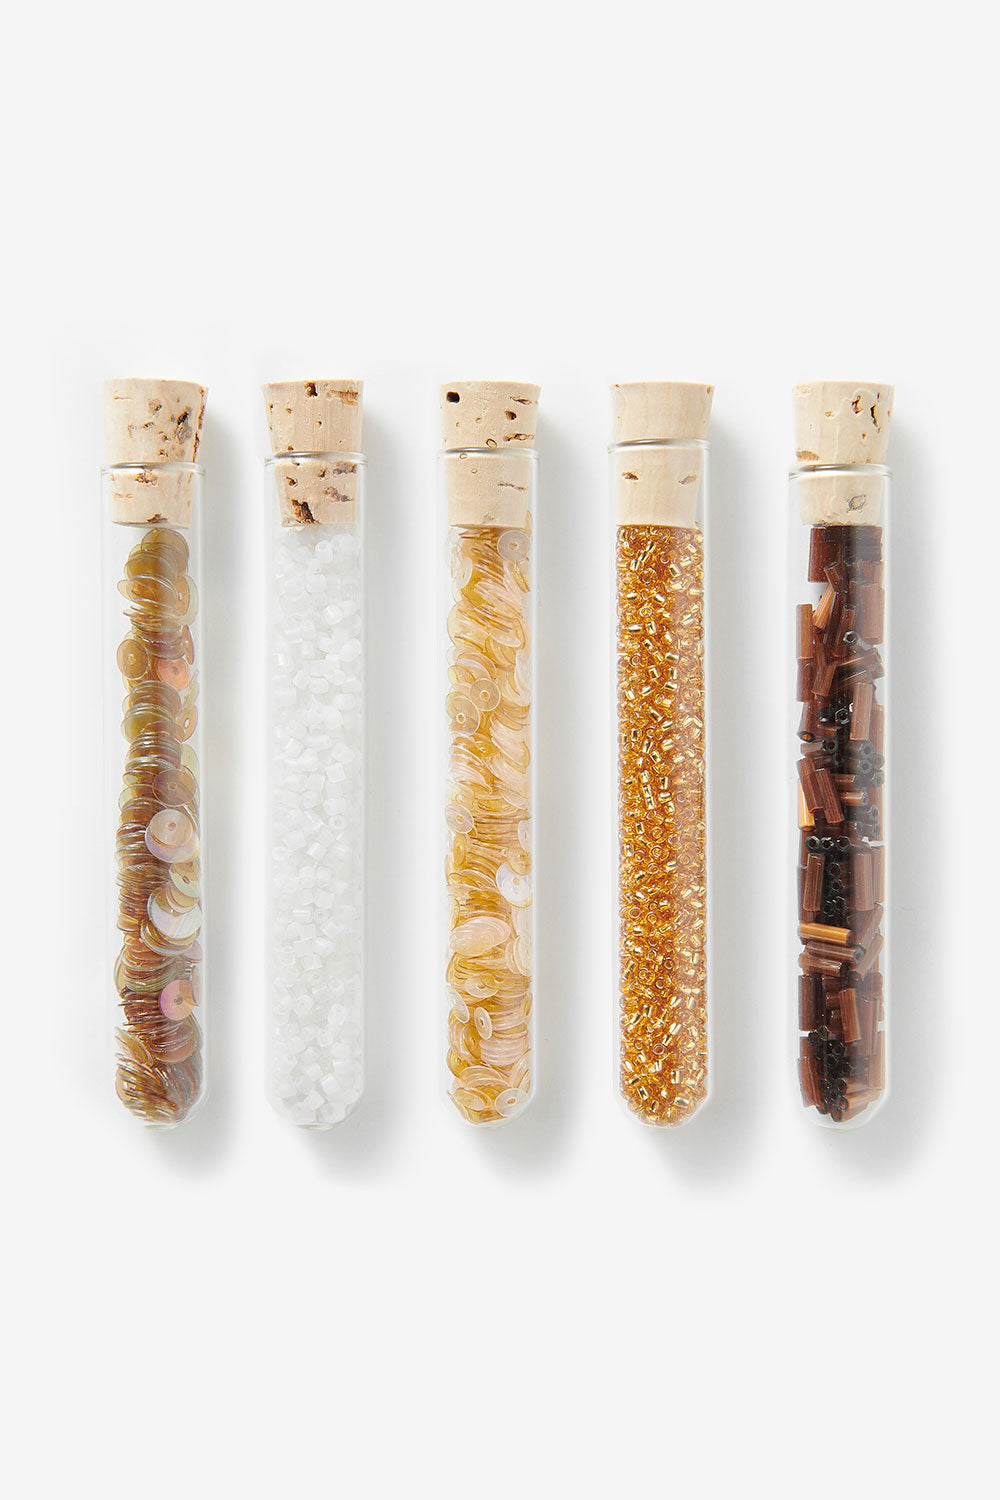 The School of Making Bead Sampler Sequins and Seed Beads in Glass Vial